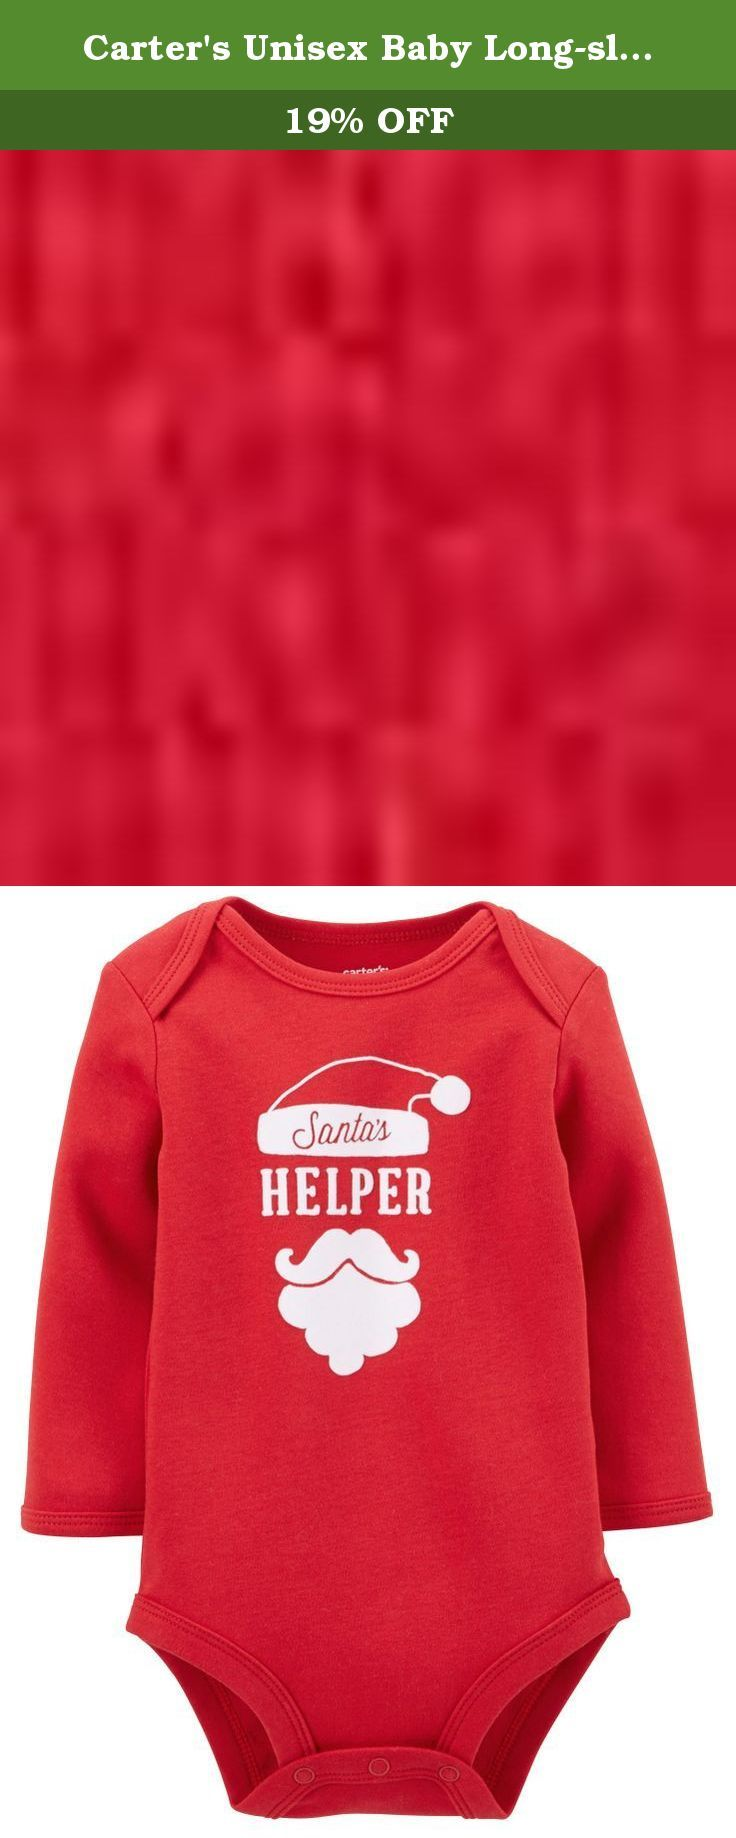 Carter's Unisex Baby Long-sleeve Christmas Bodysuit (12 Months, Red/Helper). This bodysuit is the best for baby's first Christmas. The cute holiday graphics will be perfect for photo taking or family gatherings. Expandable shoulders for easy over-the-head dressing Nickel-free snaps on reinforced panel last through all of those diaper changes.